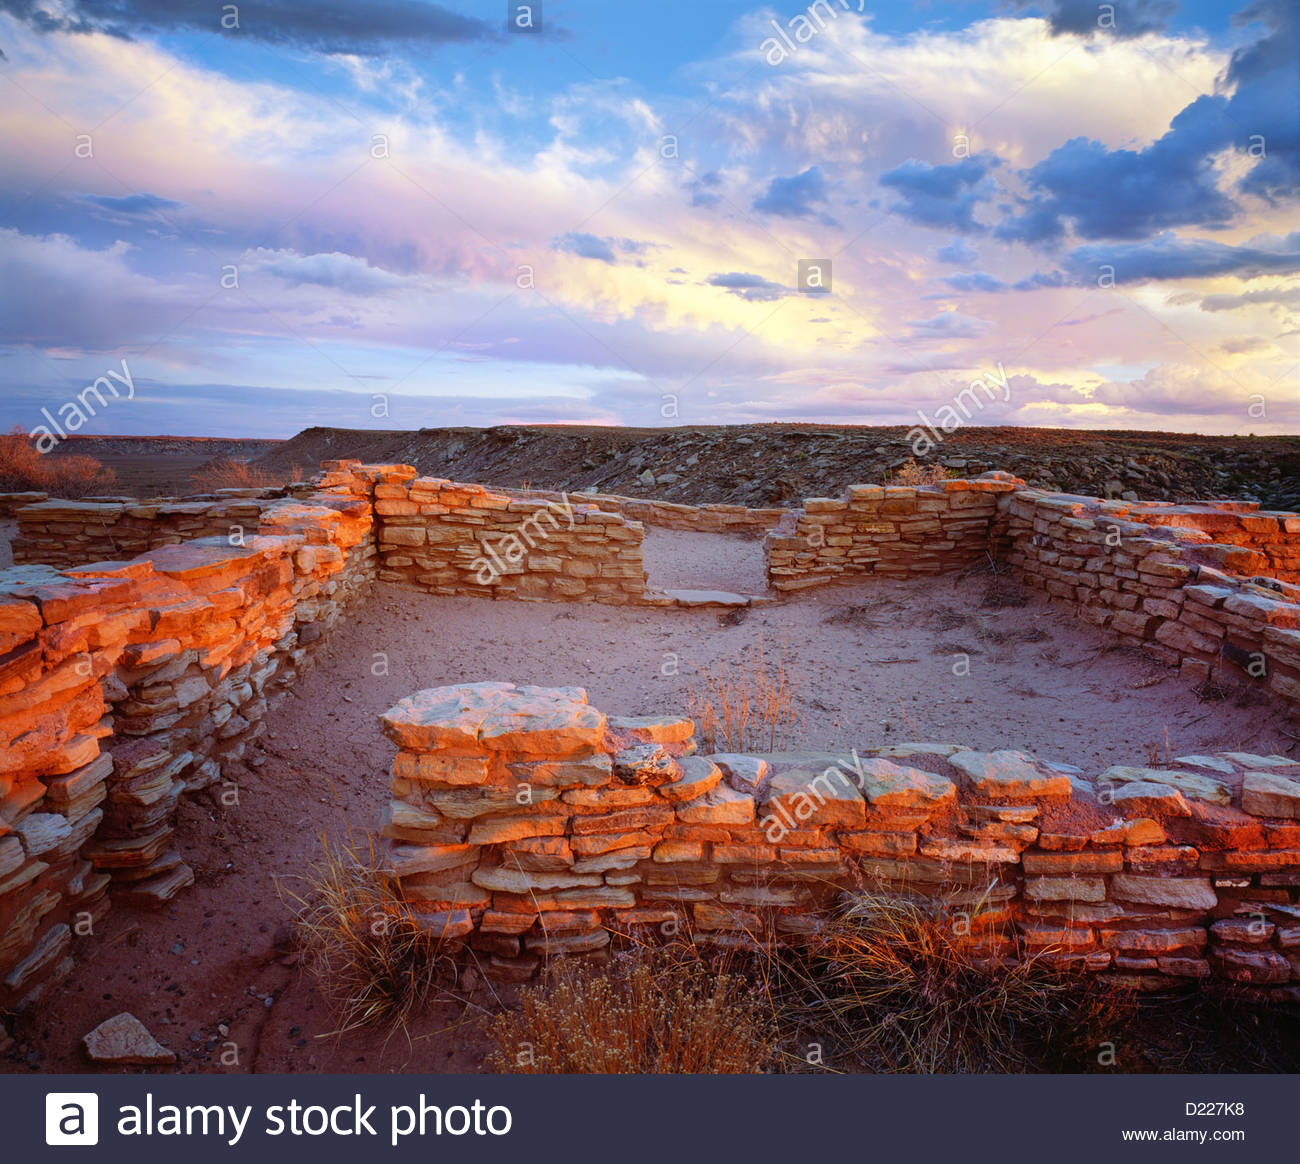 Anasazi ruins of the 'Puerco Pueblo' [Petrified Forest National Park] Arizona - Stock Image